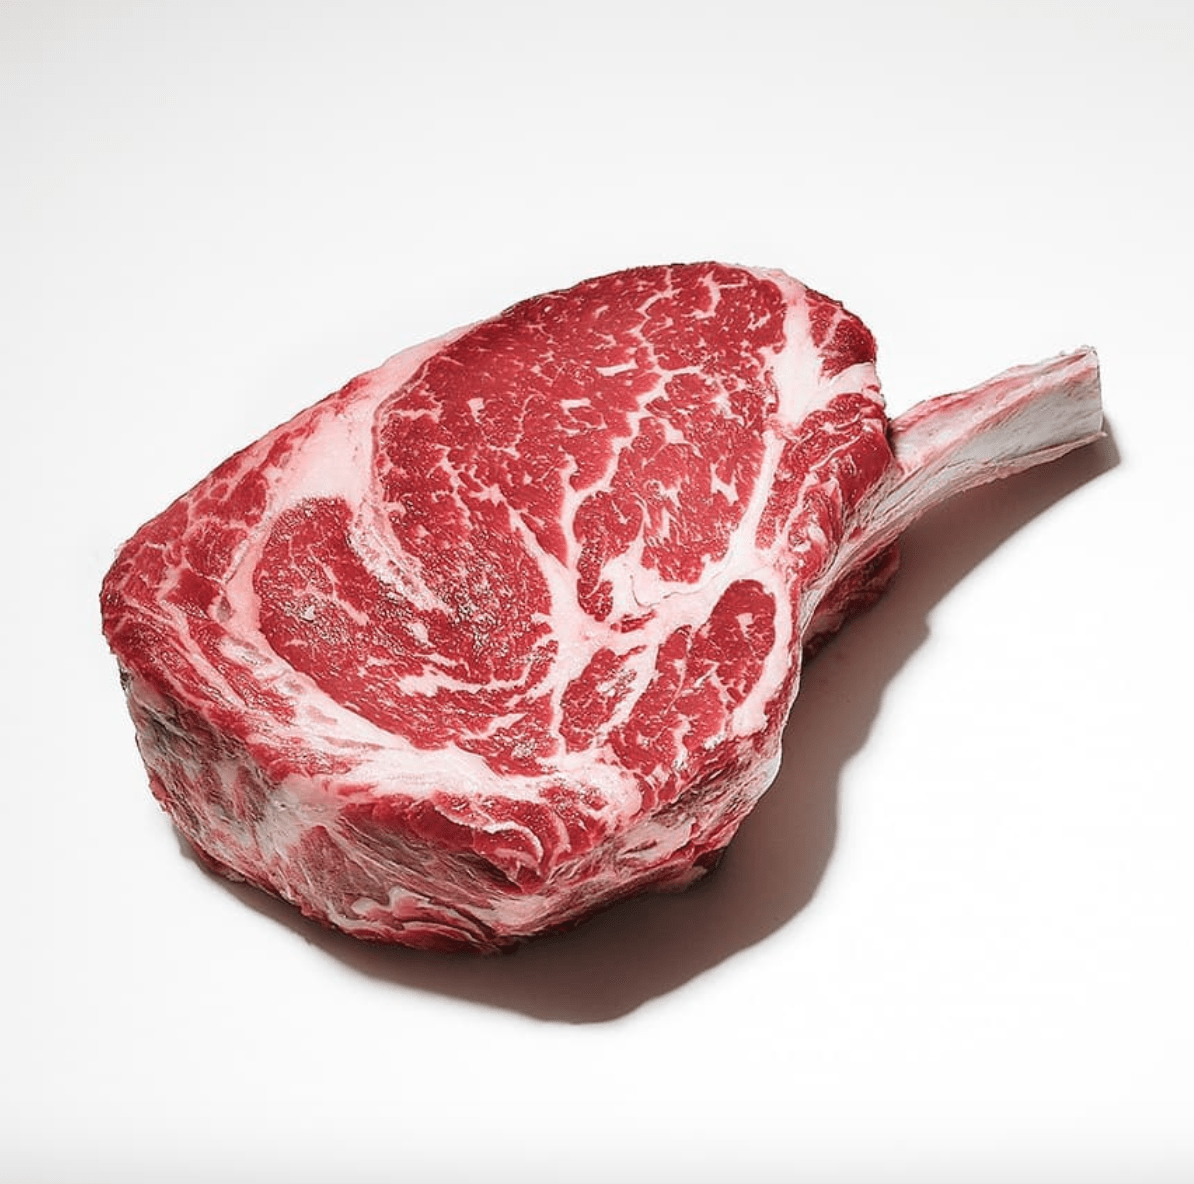 Lab-Grown Meat, Clean Meats, Cultured Meats - Virtuul World